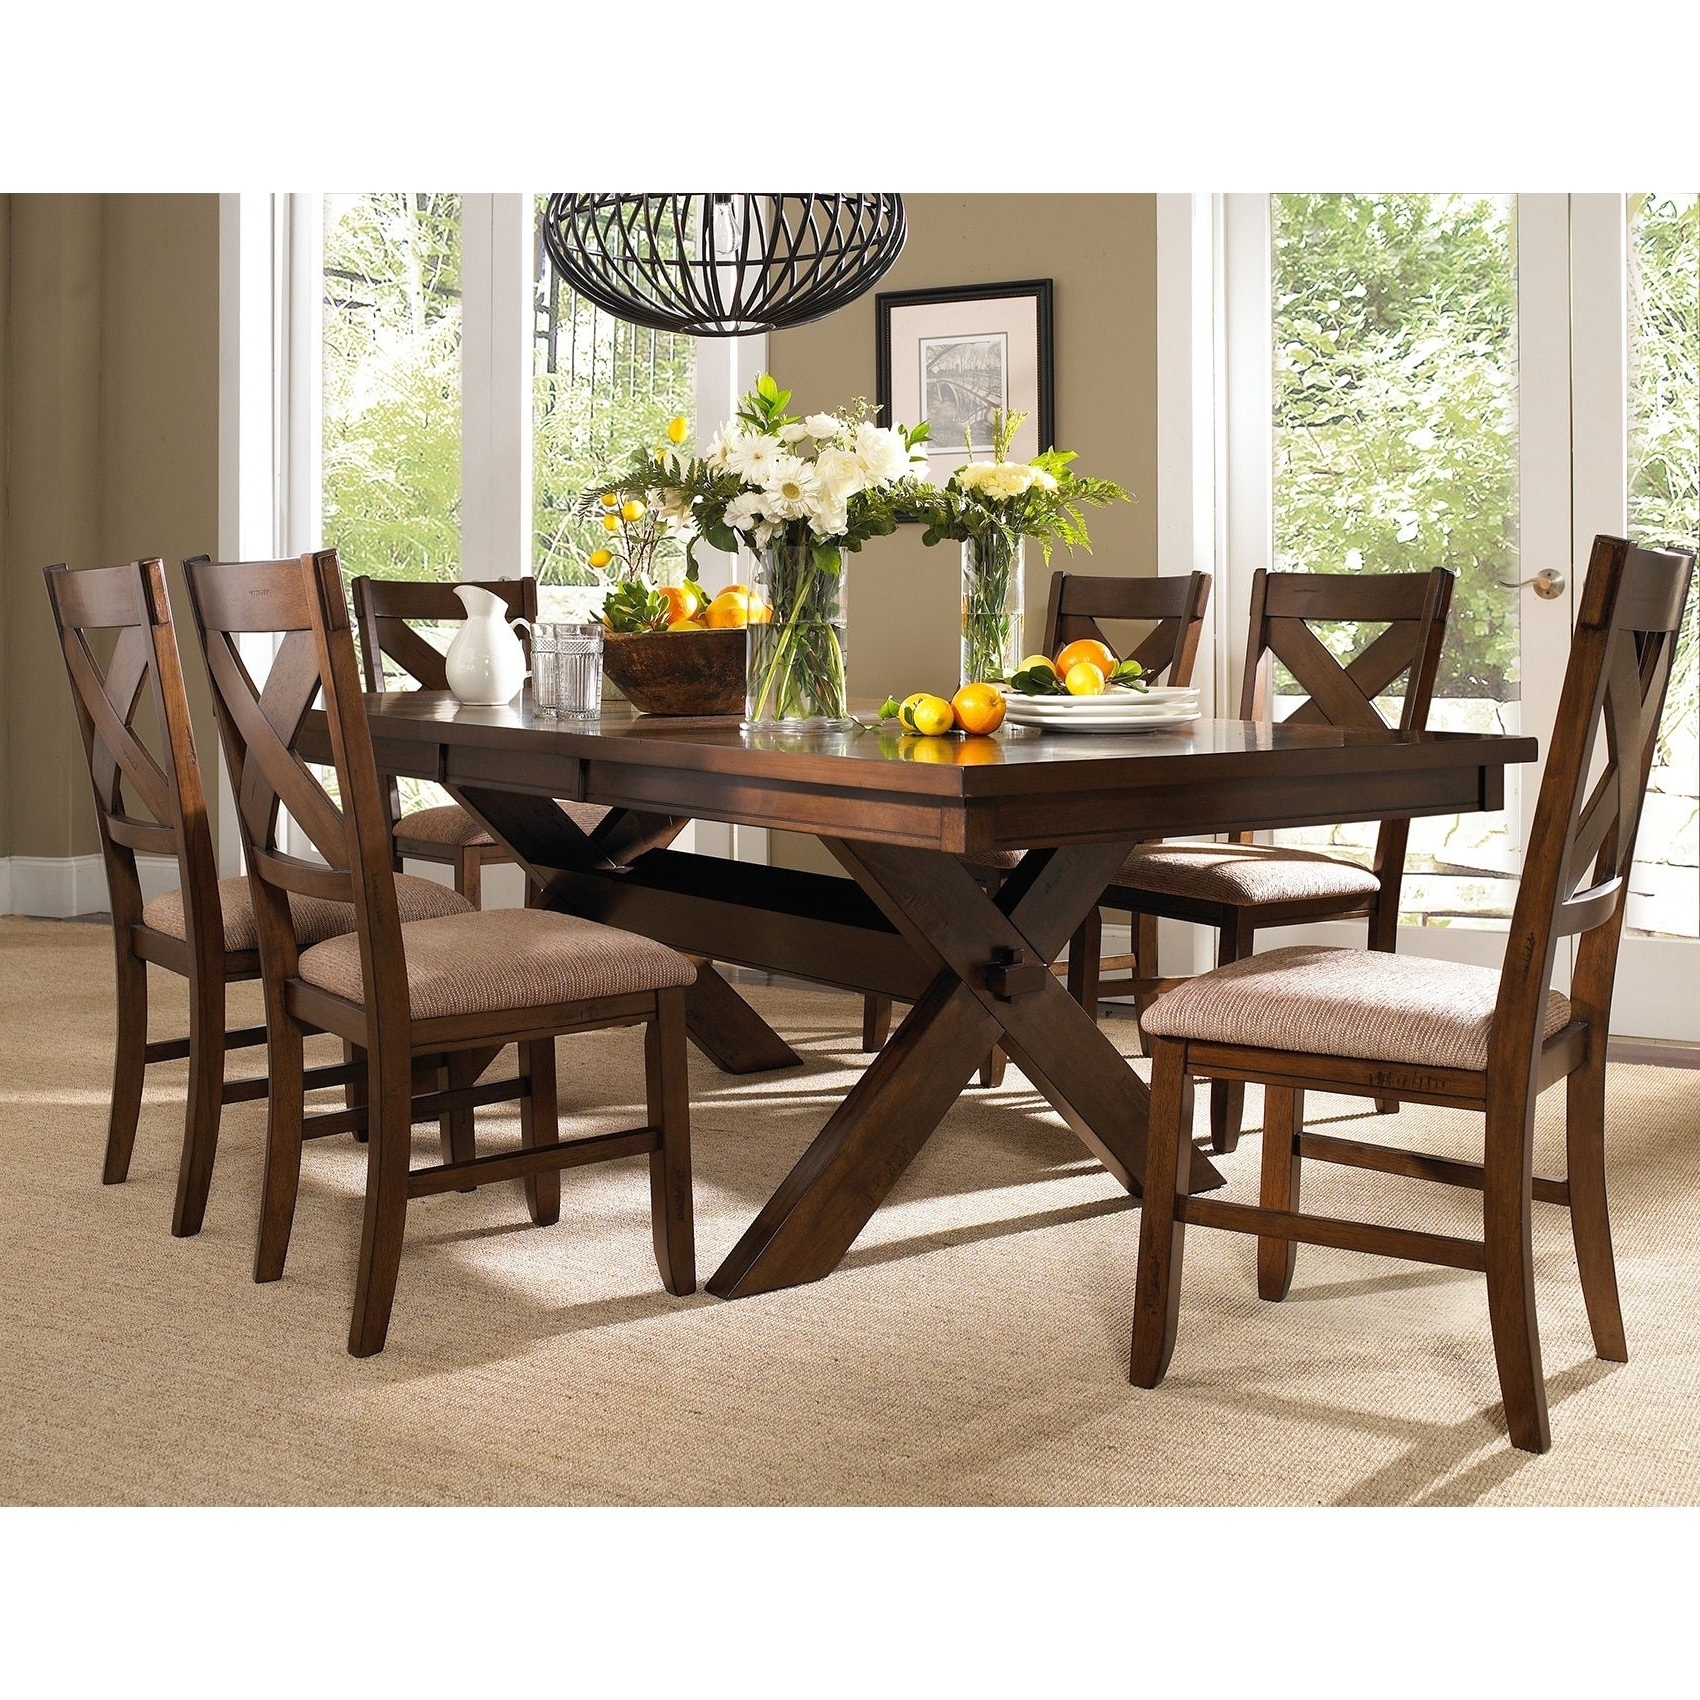 Most Recent Craftsman 7 Piece Rectangle Extension Dining Sets With Arm & Side Chairs With 7 Piece Solid Wood Dining Set With Table And 6 Chairs (Dark Hazelnut (View 1 of 25)